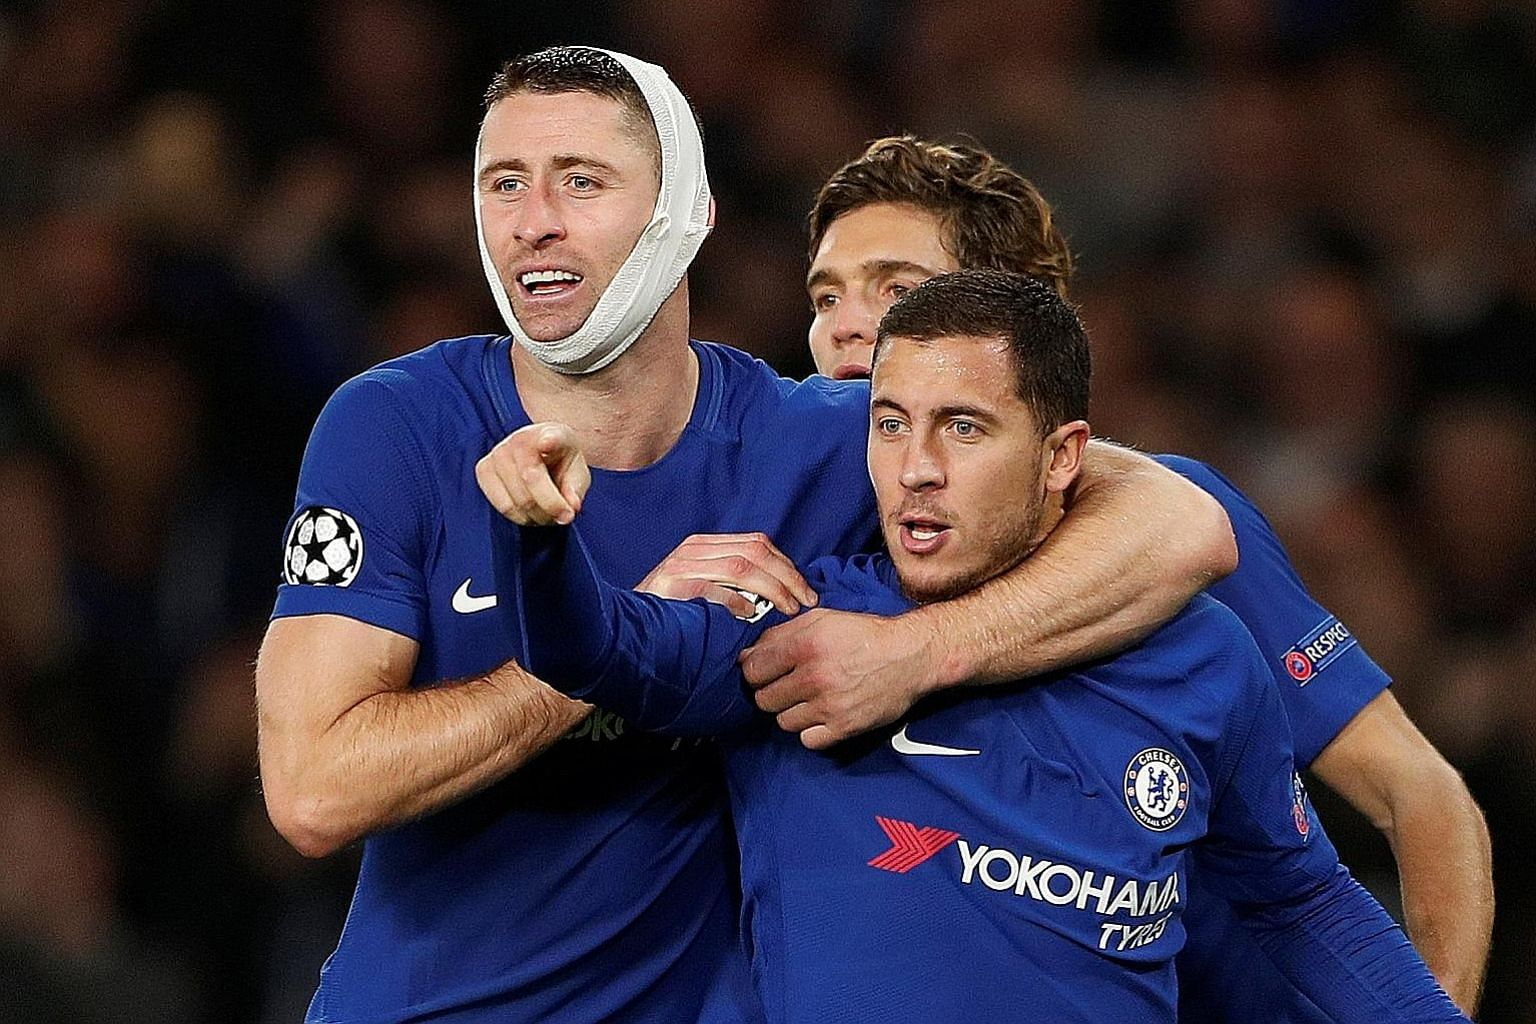 Chelsea's Eden Hazard (front) celebrating his 75th-minute equaliser against Roma with captain Gary Cahill and Marcos Alonso, which gave the Blues a point on Wednesday. They threw away a two-goal lead, and with two league losses in a row and N'Golo Ka